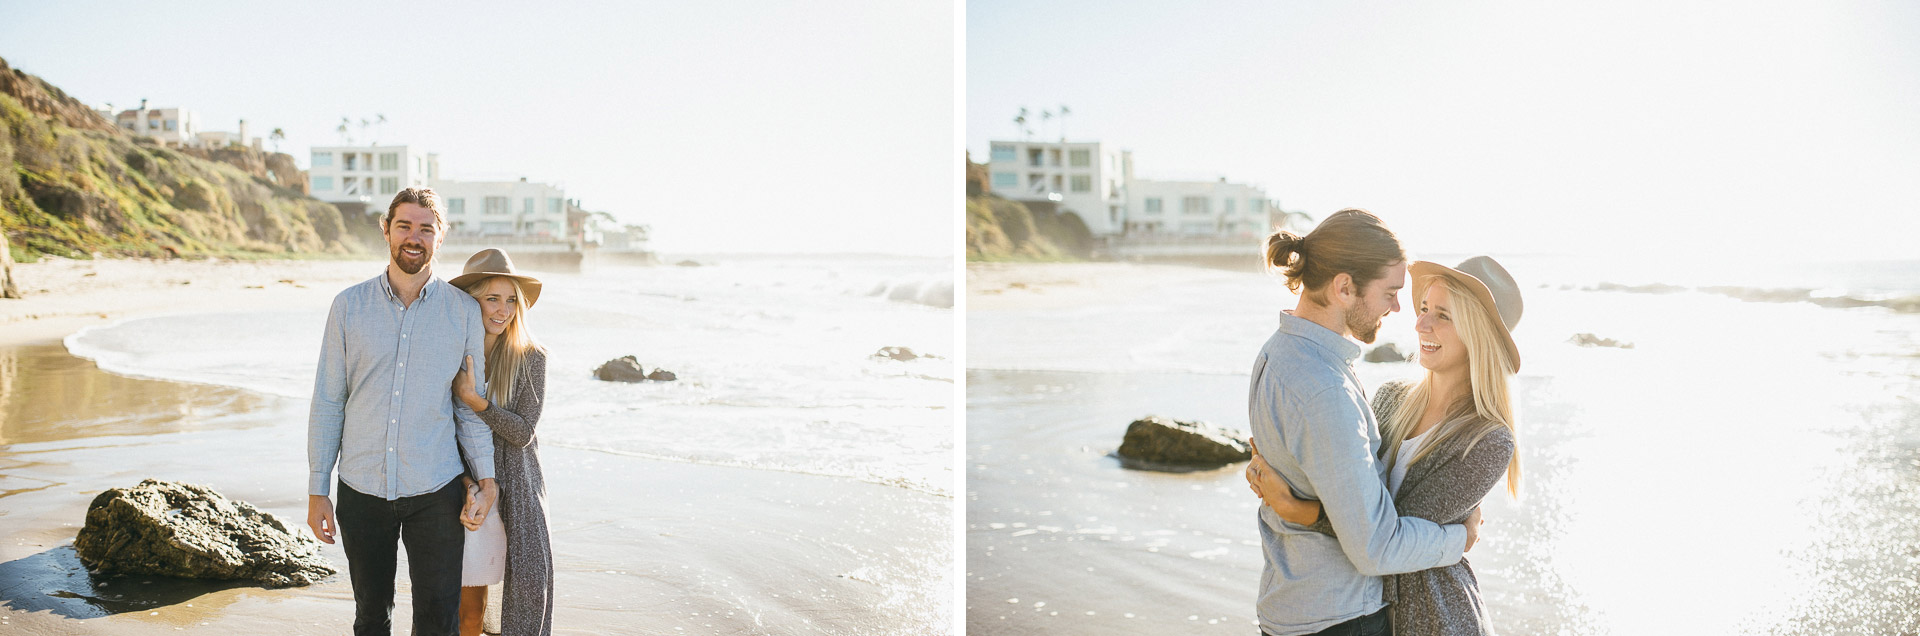 Carley_Jake_Lovesession_California_LosAngeles_ElMatadorBeach_JeanLaurentGaudy_MIX004